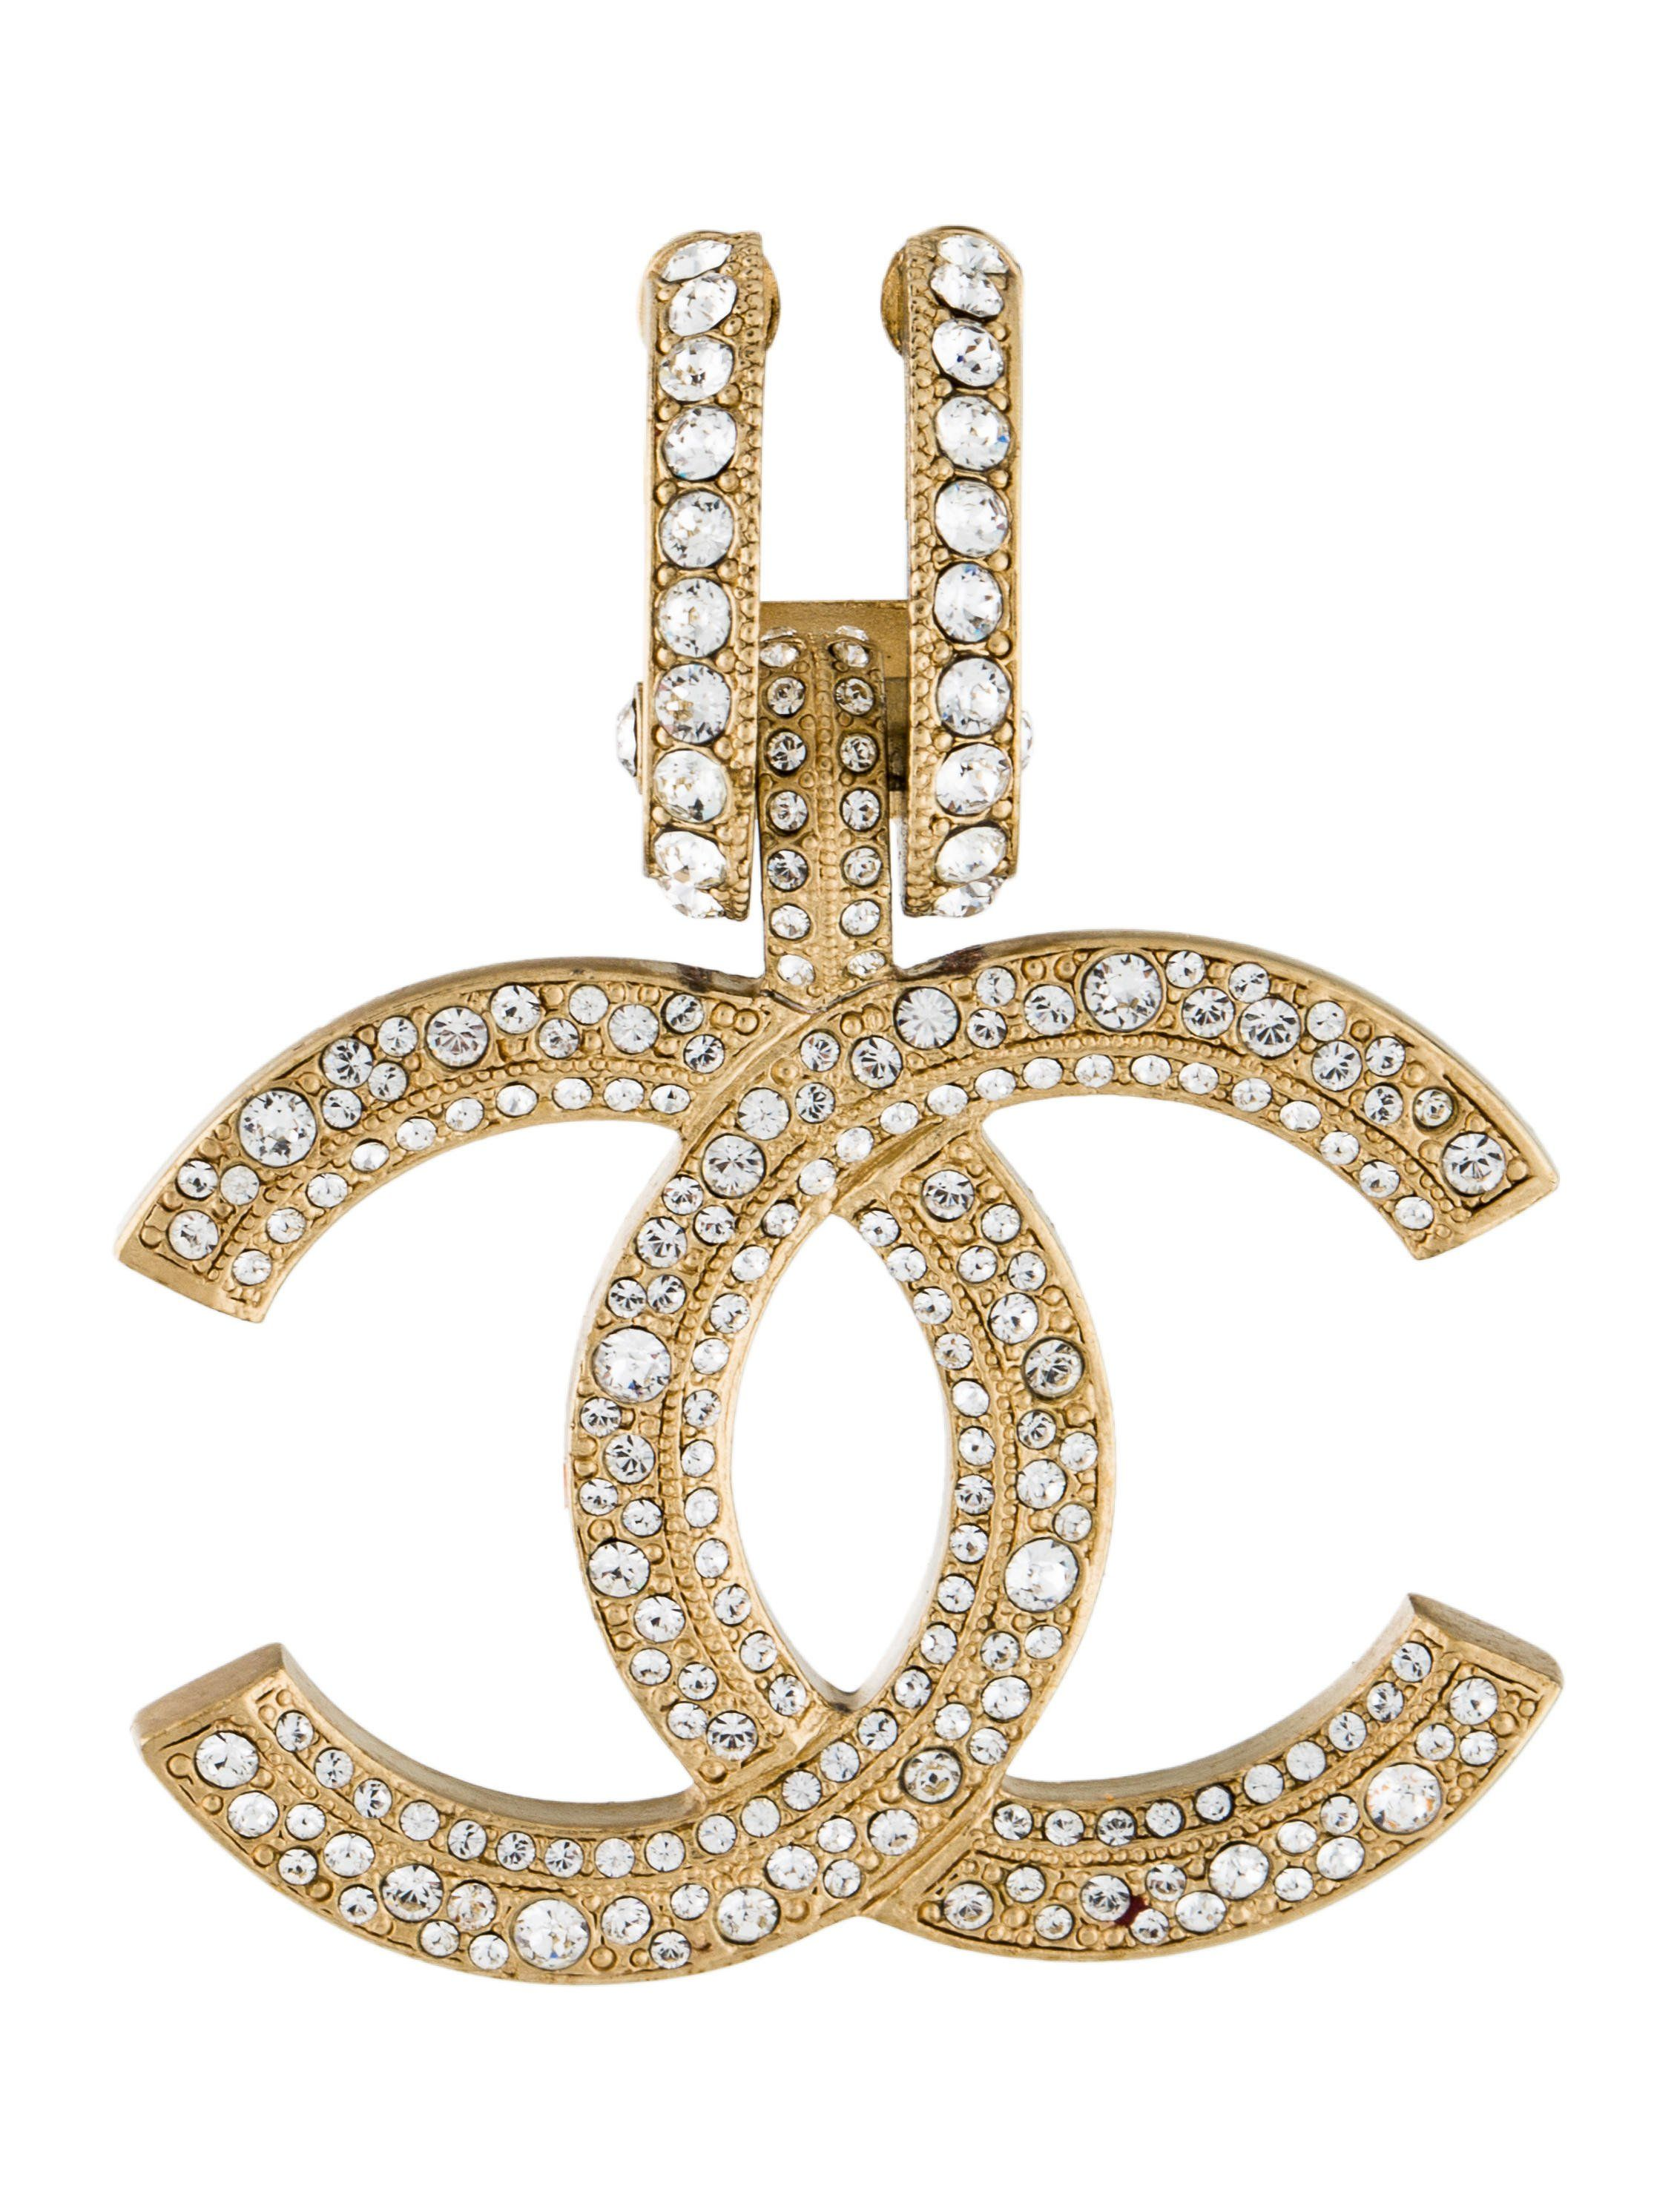 From the Summer 2017. Goldtone Chanel crystal earring